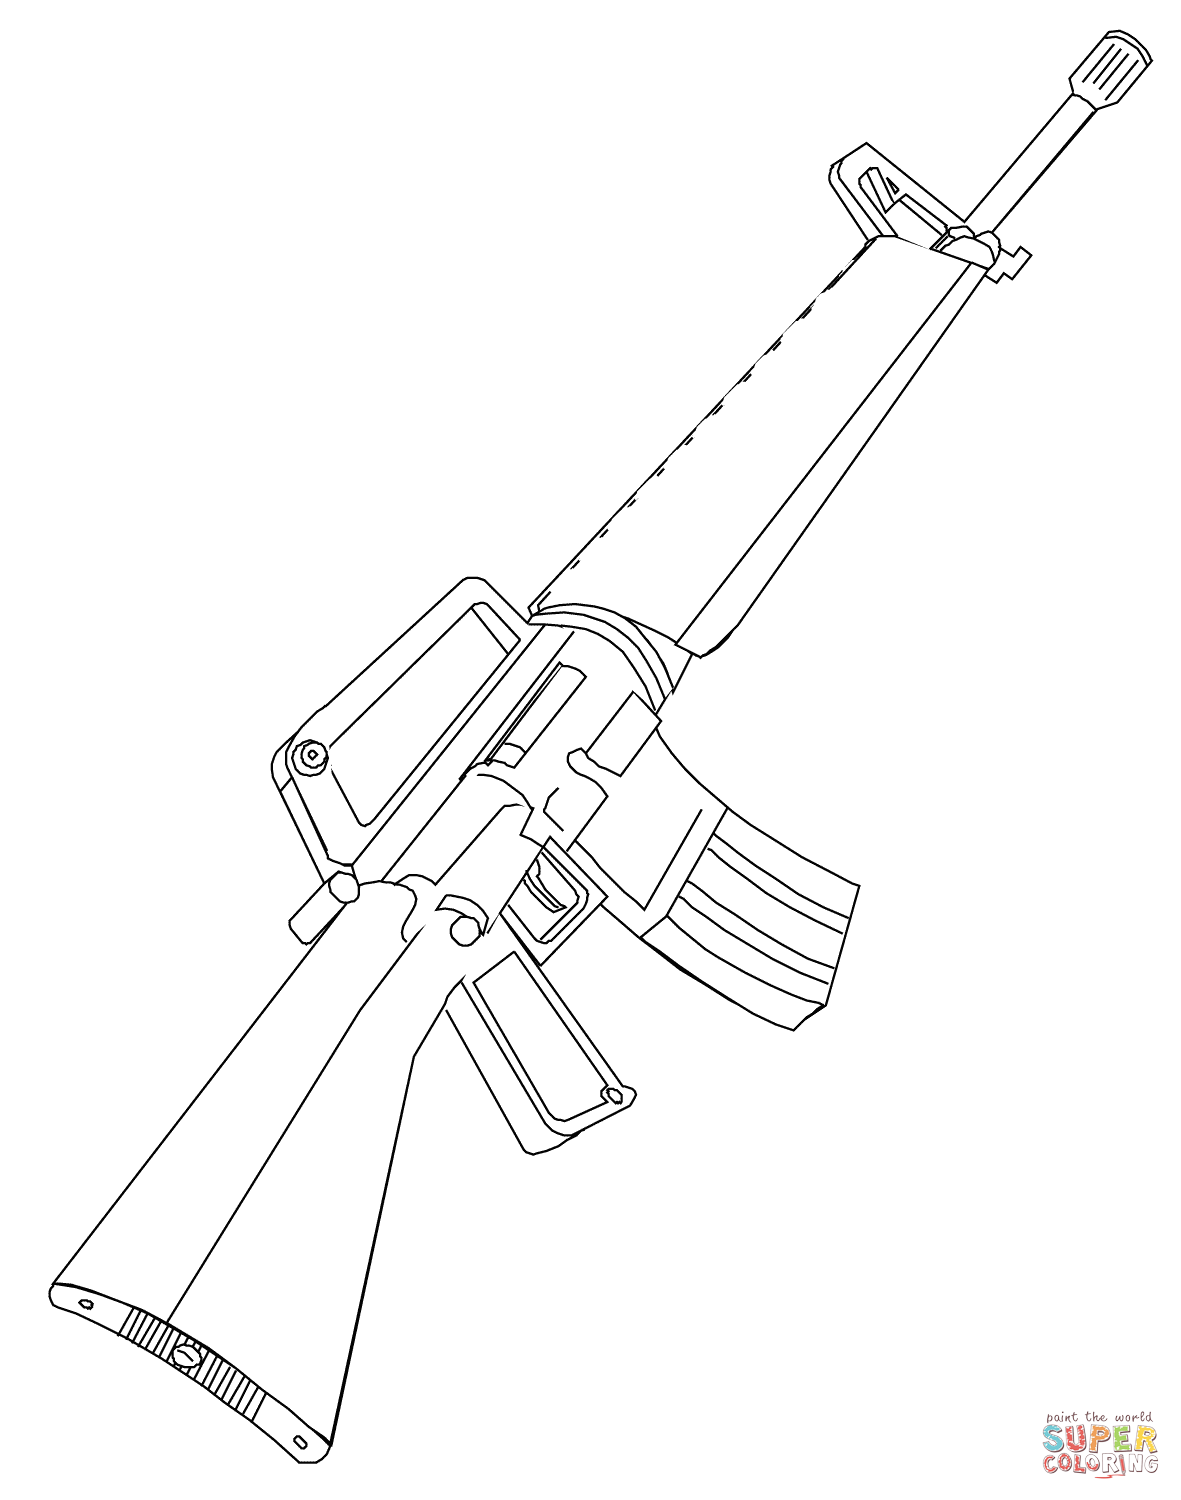 Assault Rifle coloring #20, Download drawings